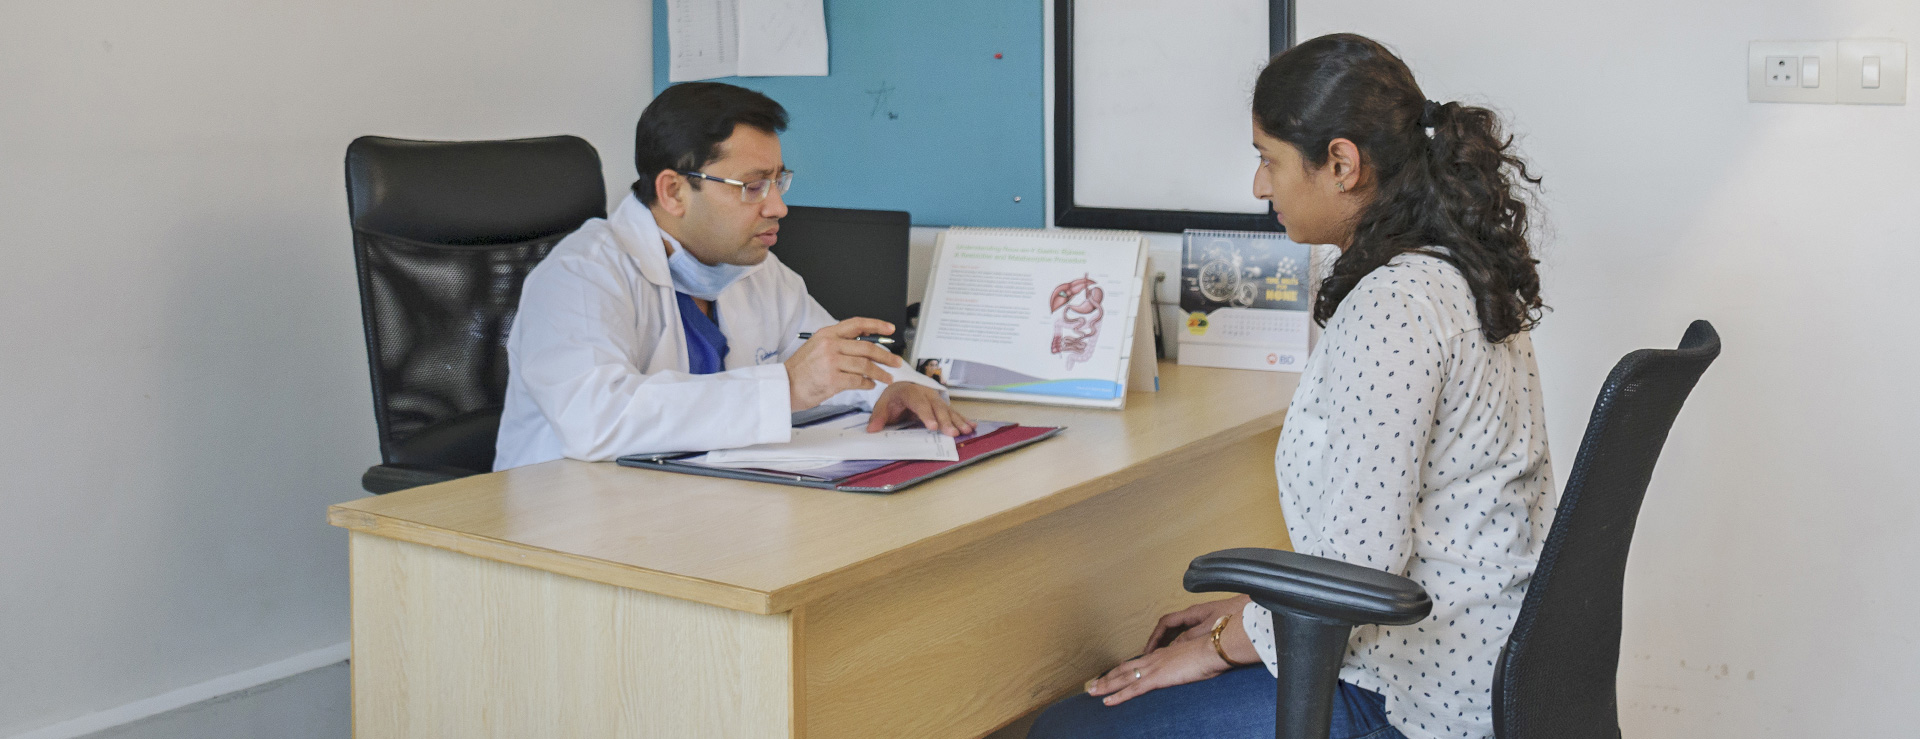 general-services-for-diabetes-treatment-and-obesity-surgery-in-mumbai